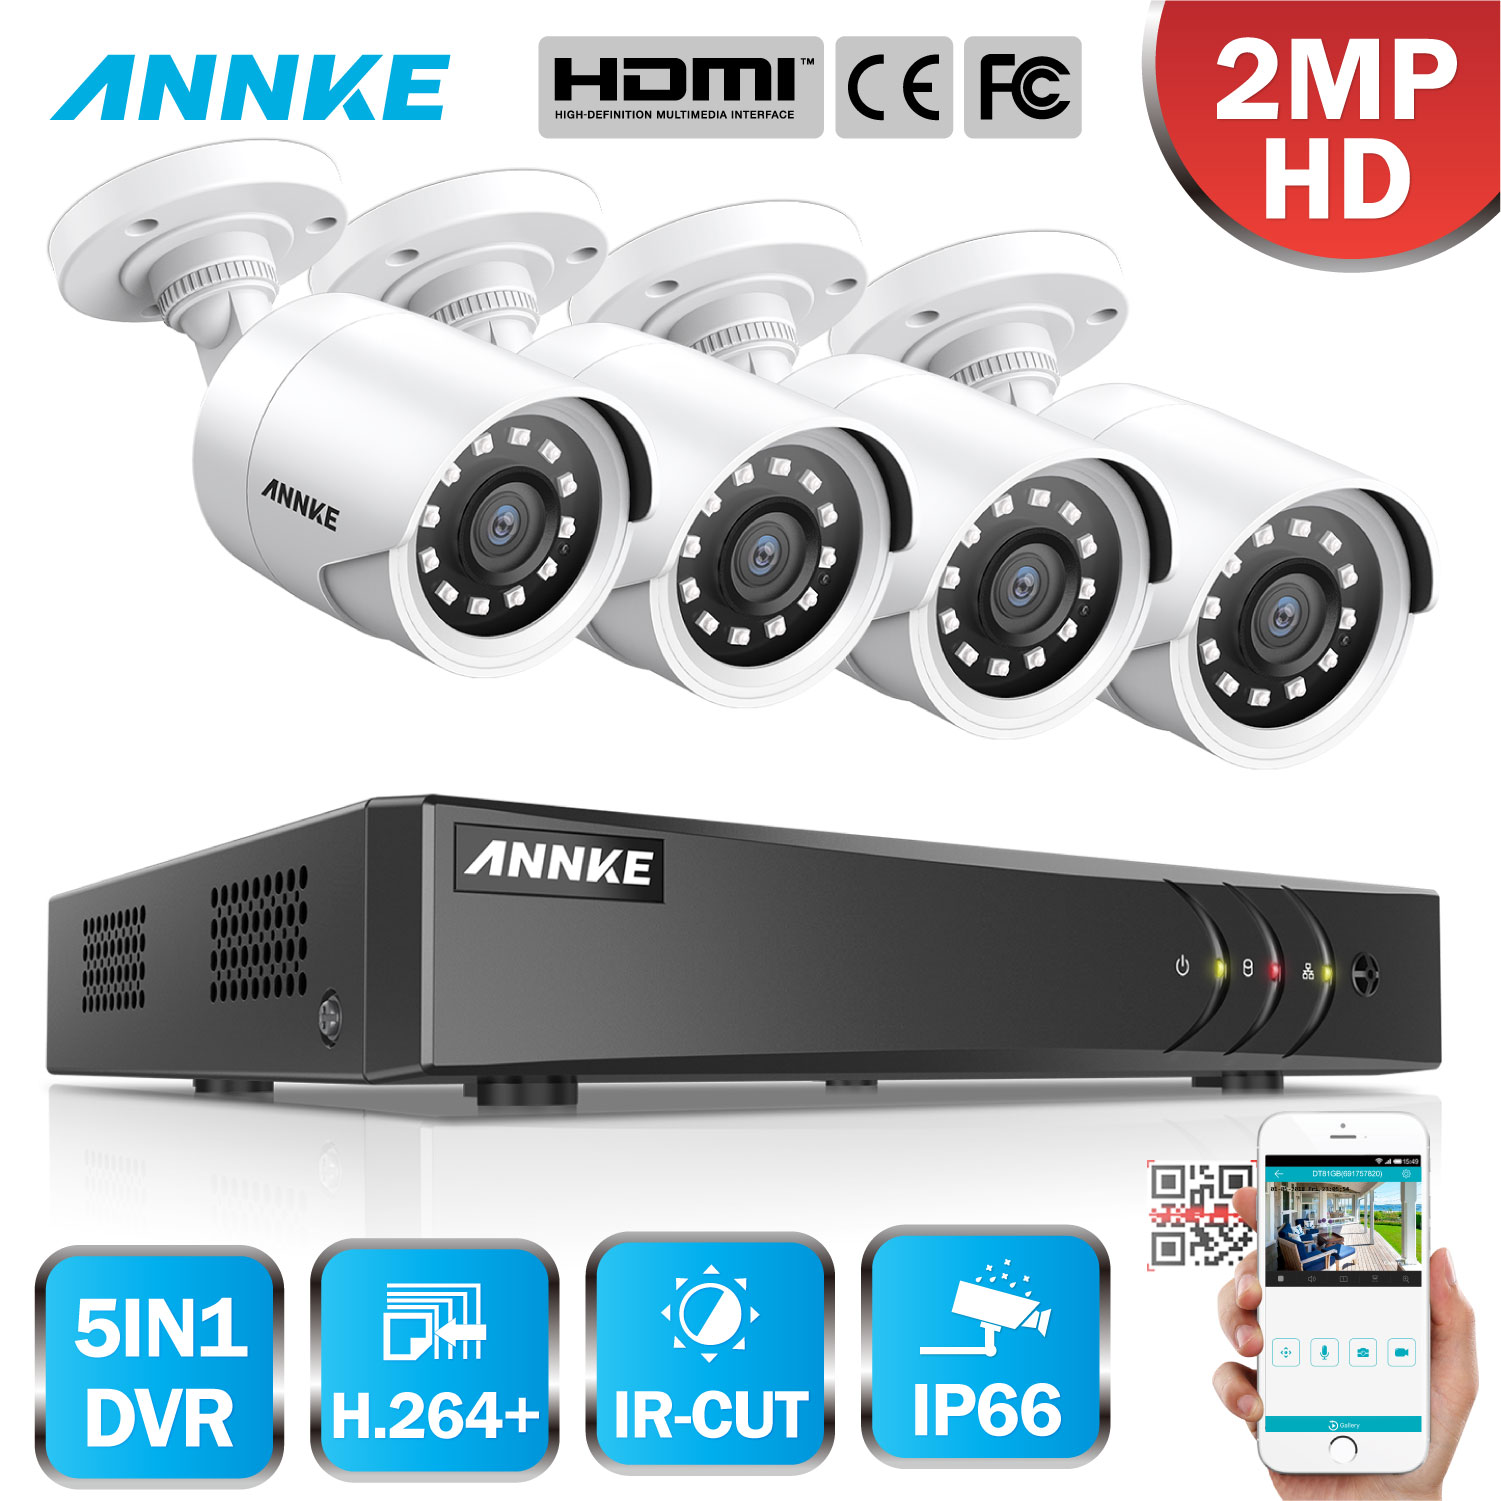 ANNKE 1080P 8CH Video Security System H.264+ 1080N DVR With 4PCS 2MP HD Smart IR Bullet Waterproof Camera Surveillance CCTV Kit